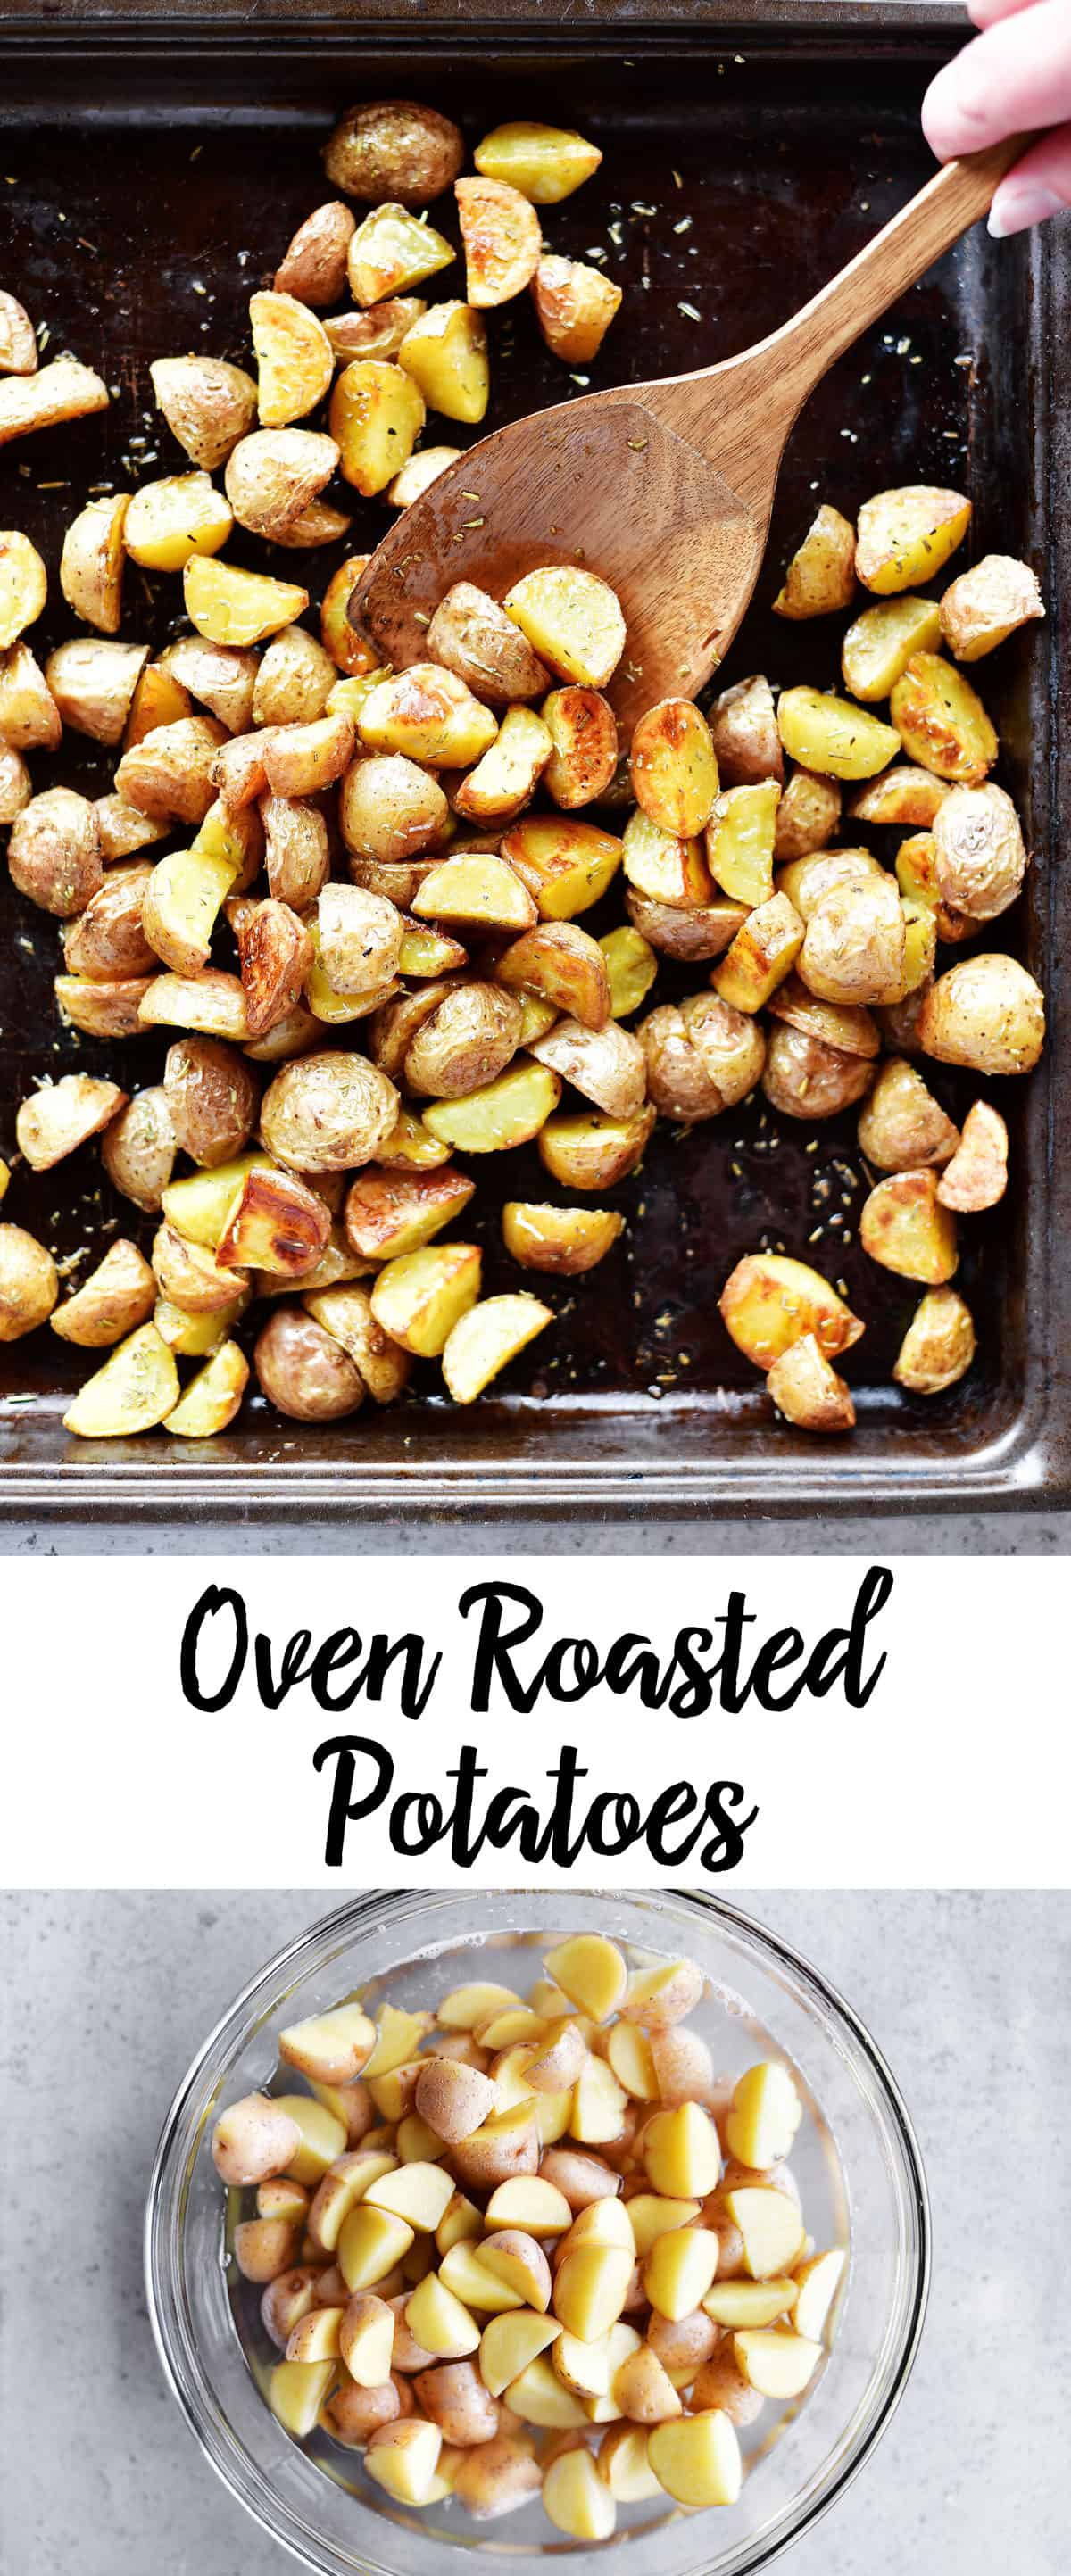 oven roasted potatoes photo collage